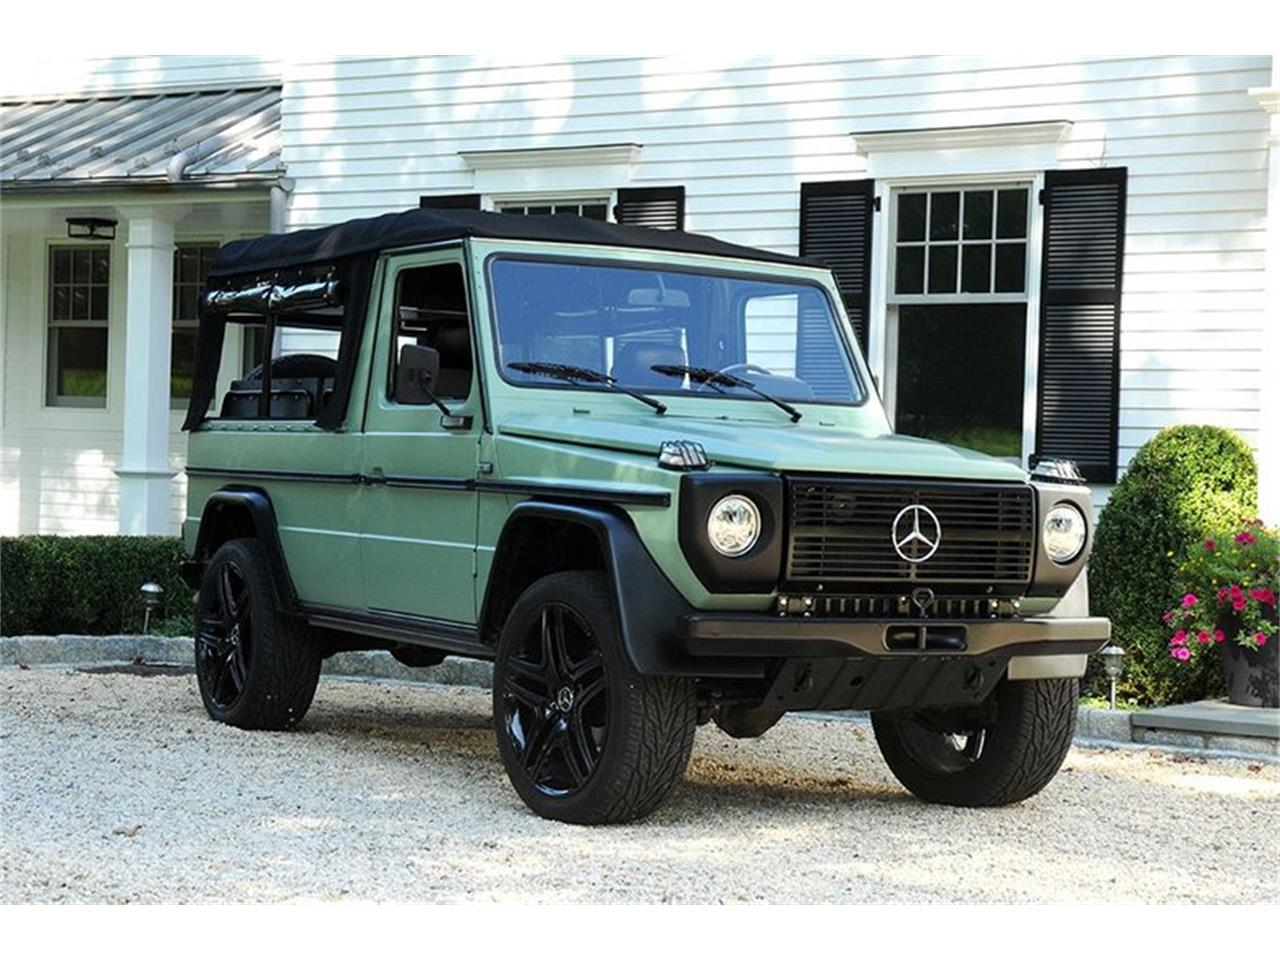 Large Picture of 1990 Mercedes-Benz 230 located in Saratoga Springs New York Auction Vehicle Offered by Saratoga Auto Auction - R1AH